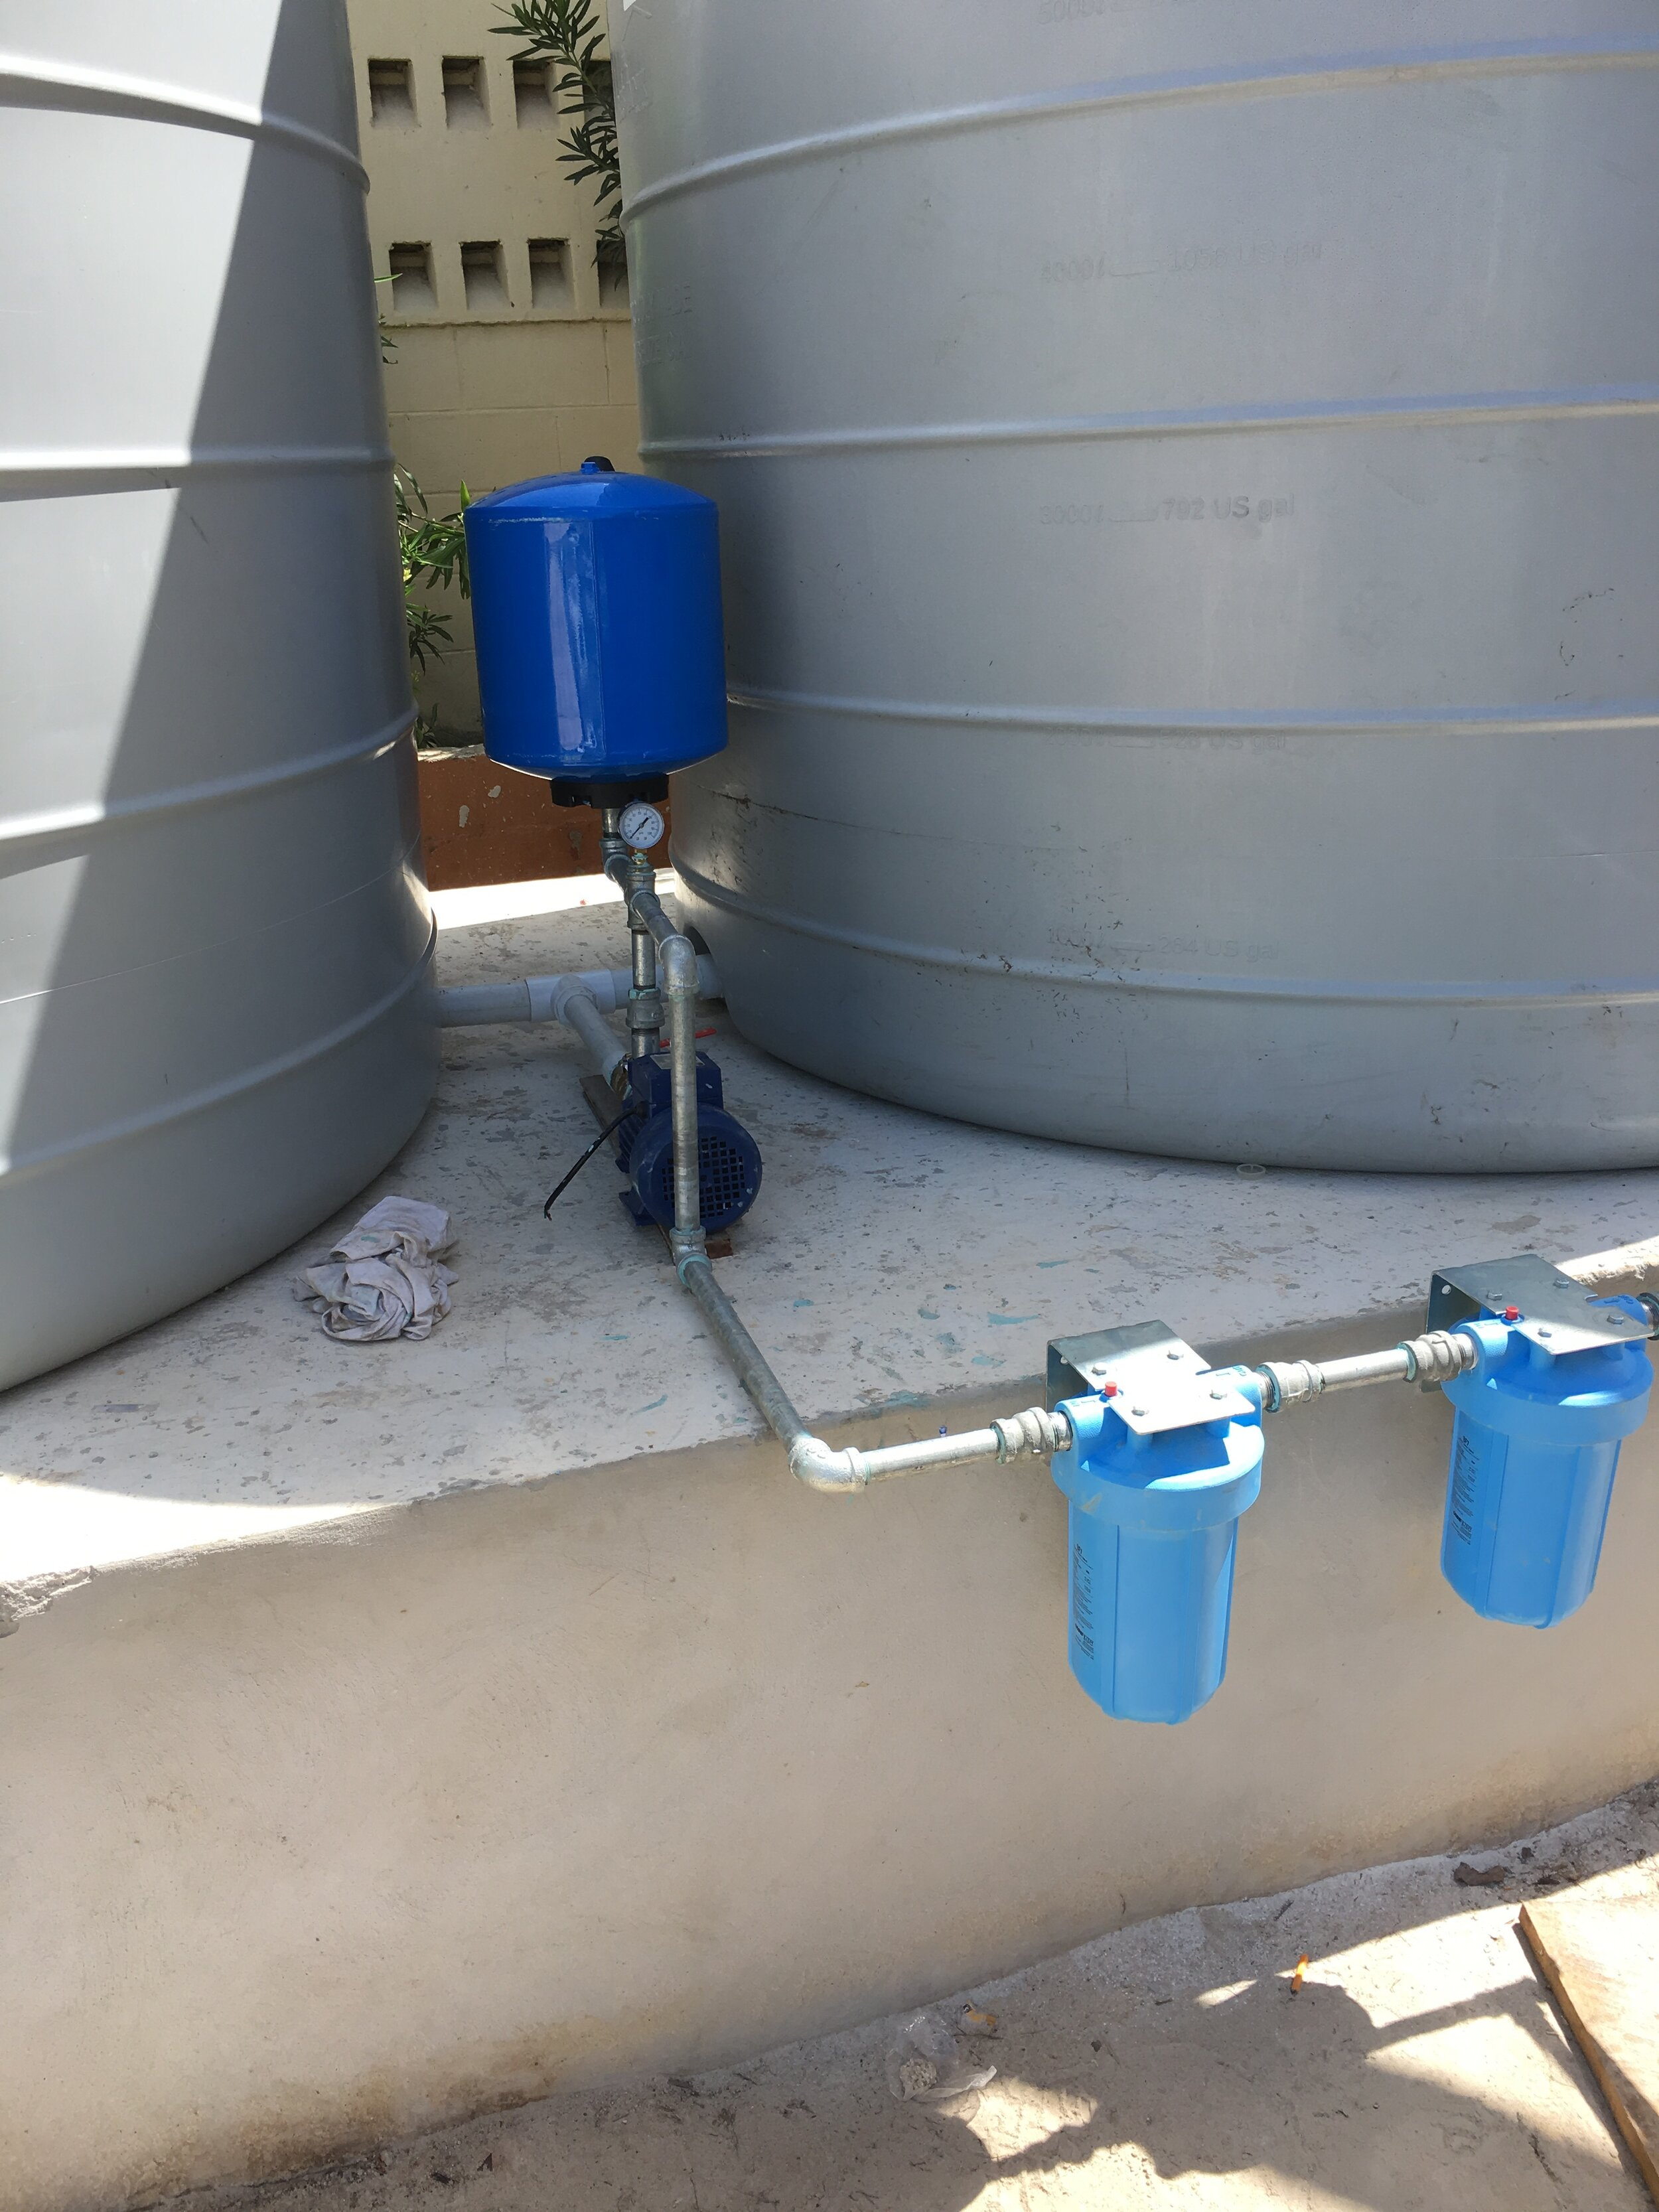 Four new rainwater vats with a filtering system are providing St. Martin's students with increased access to clean water.